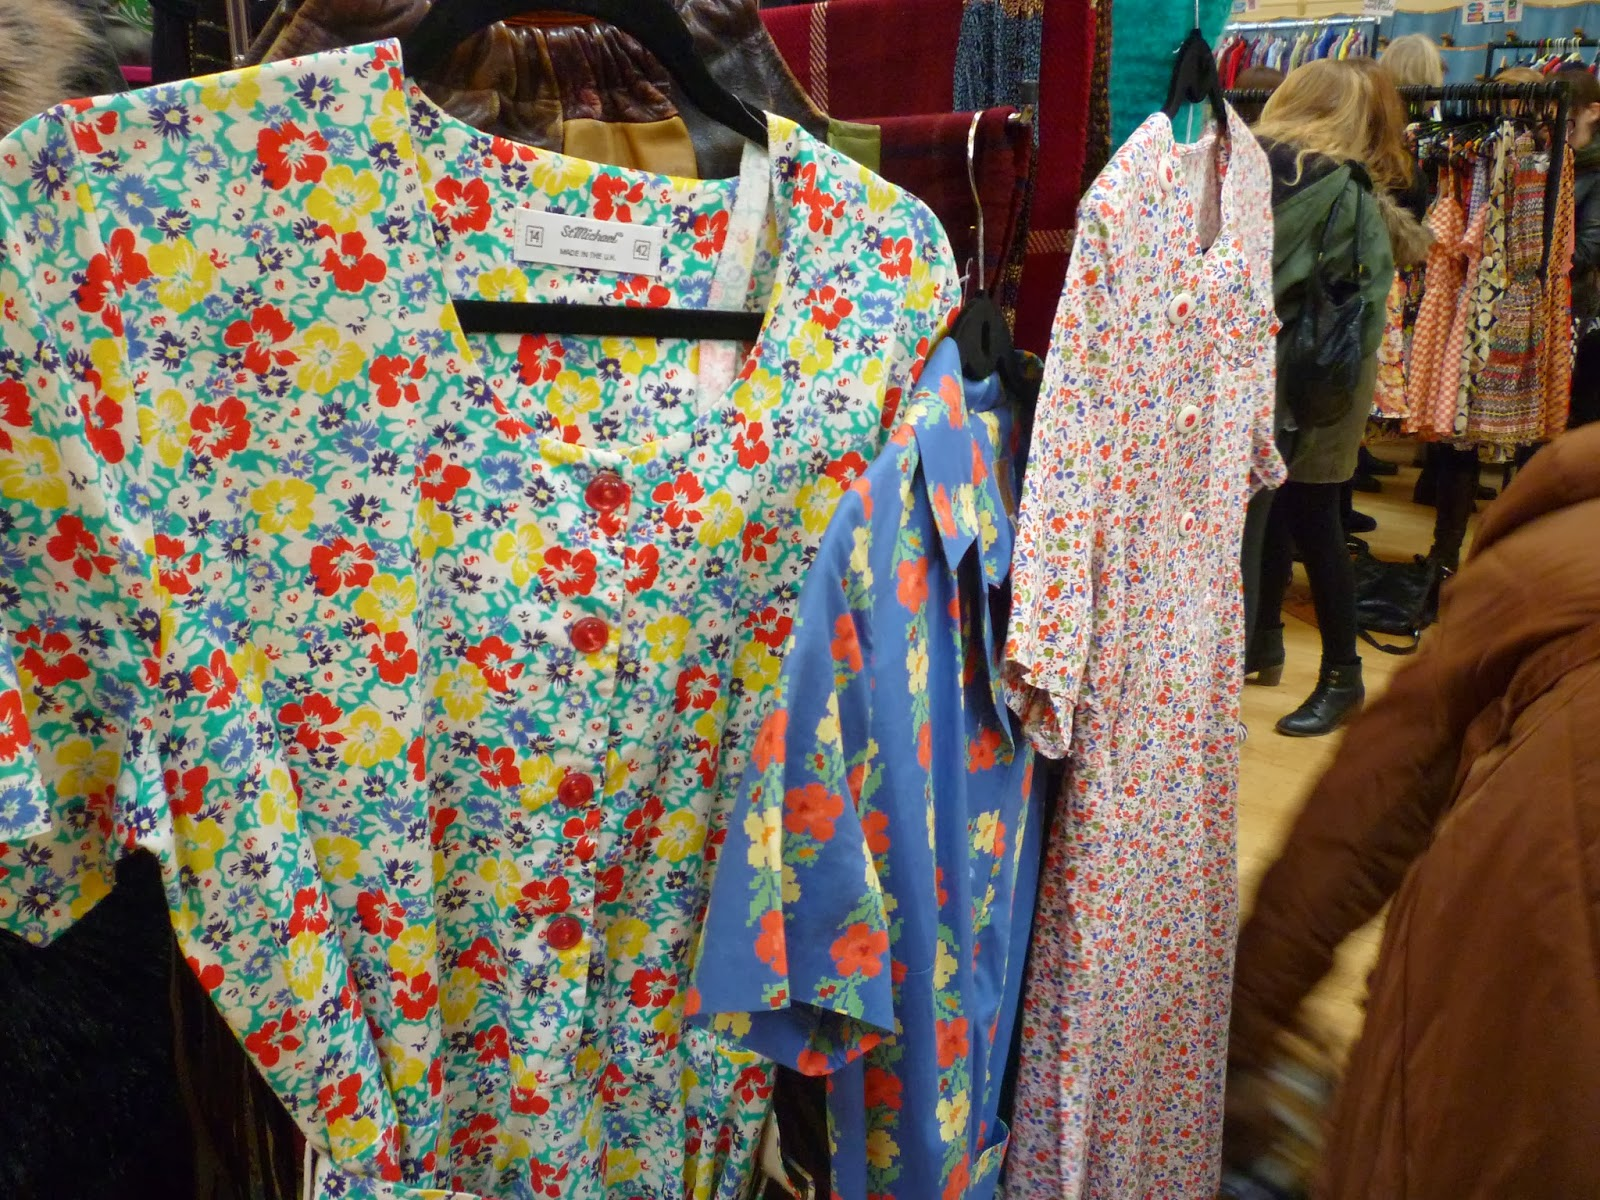 lou lou's vintage fair albert hall nottingham via lovebirds vintage